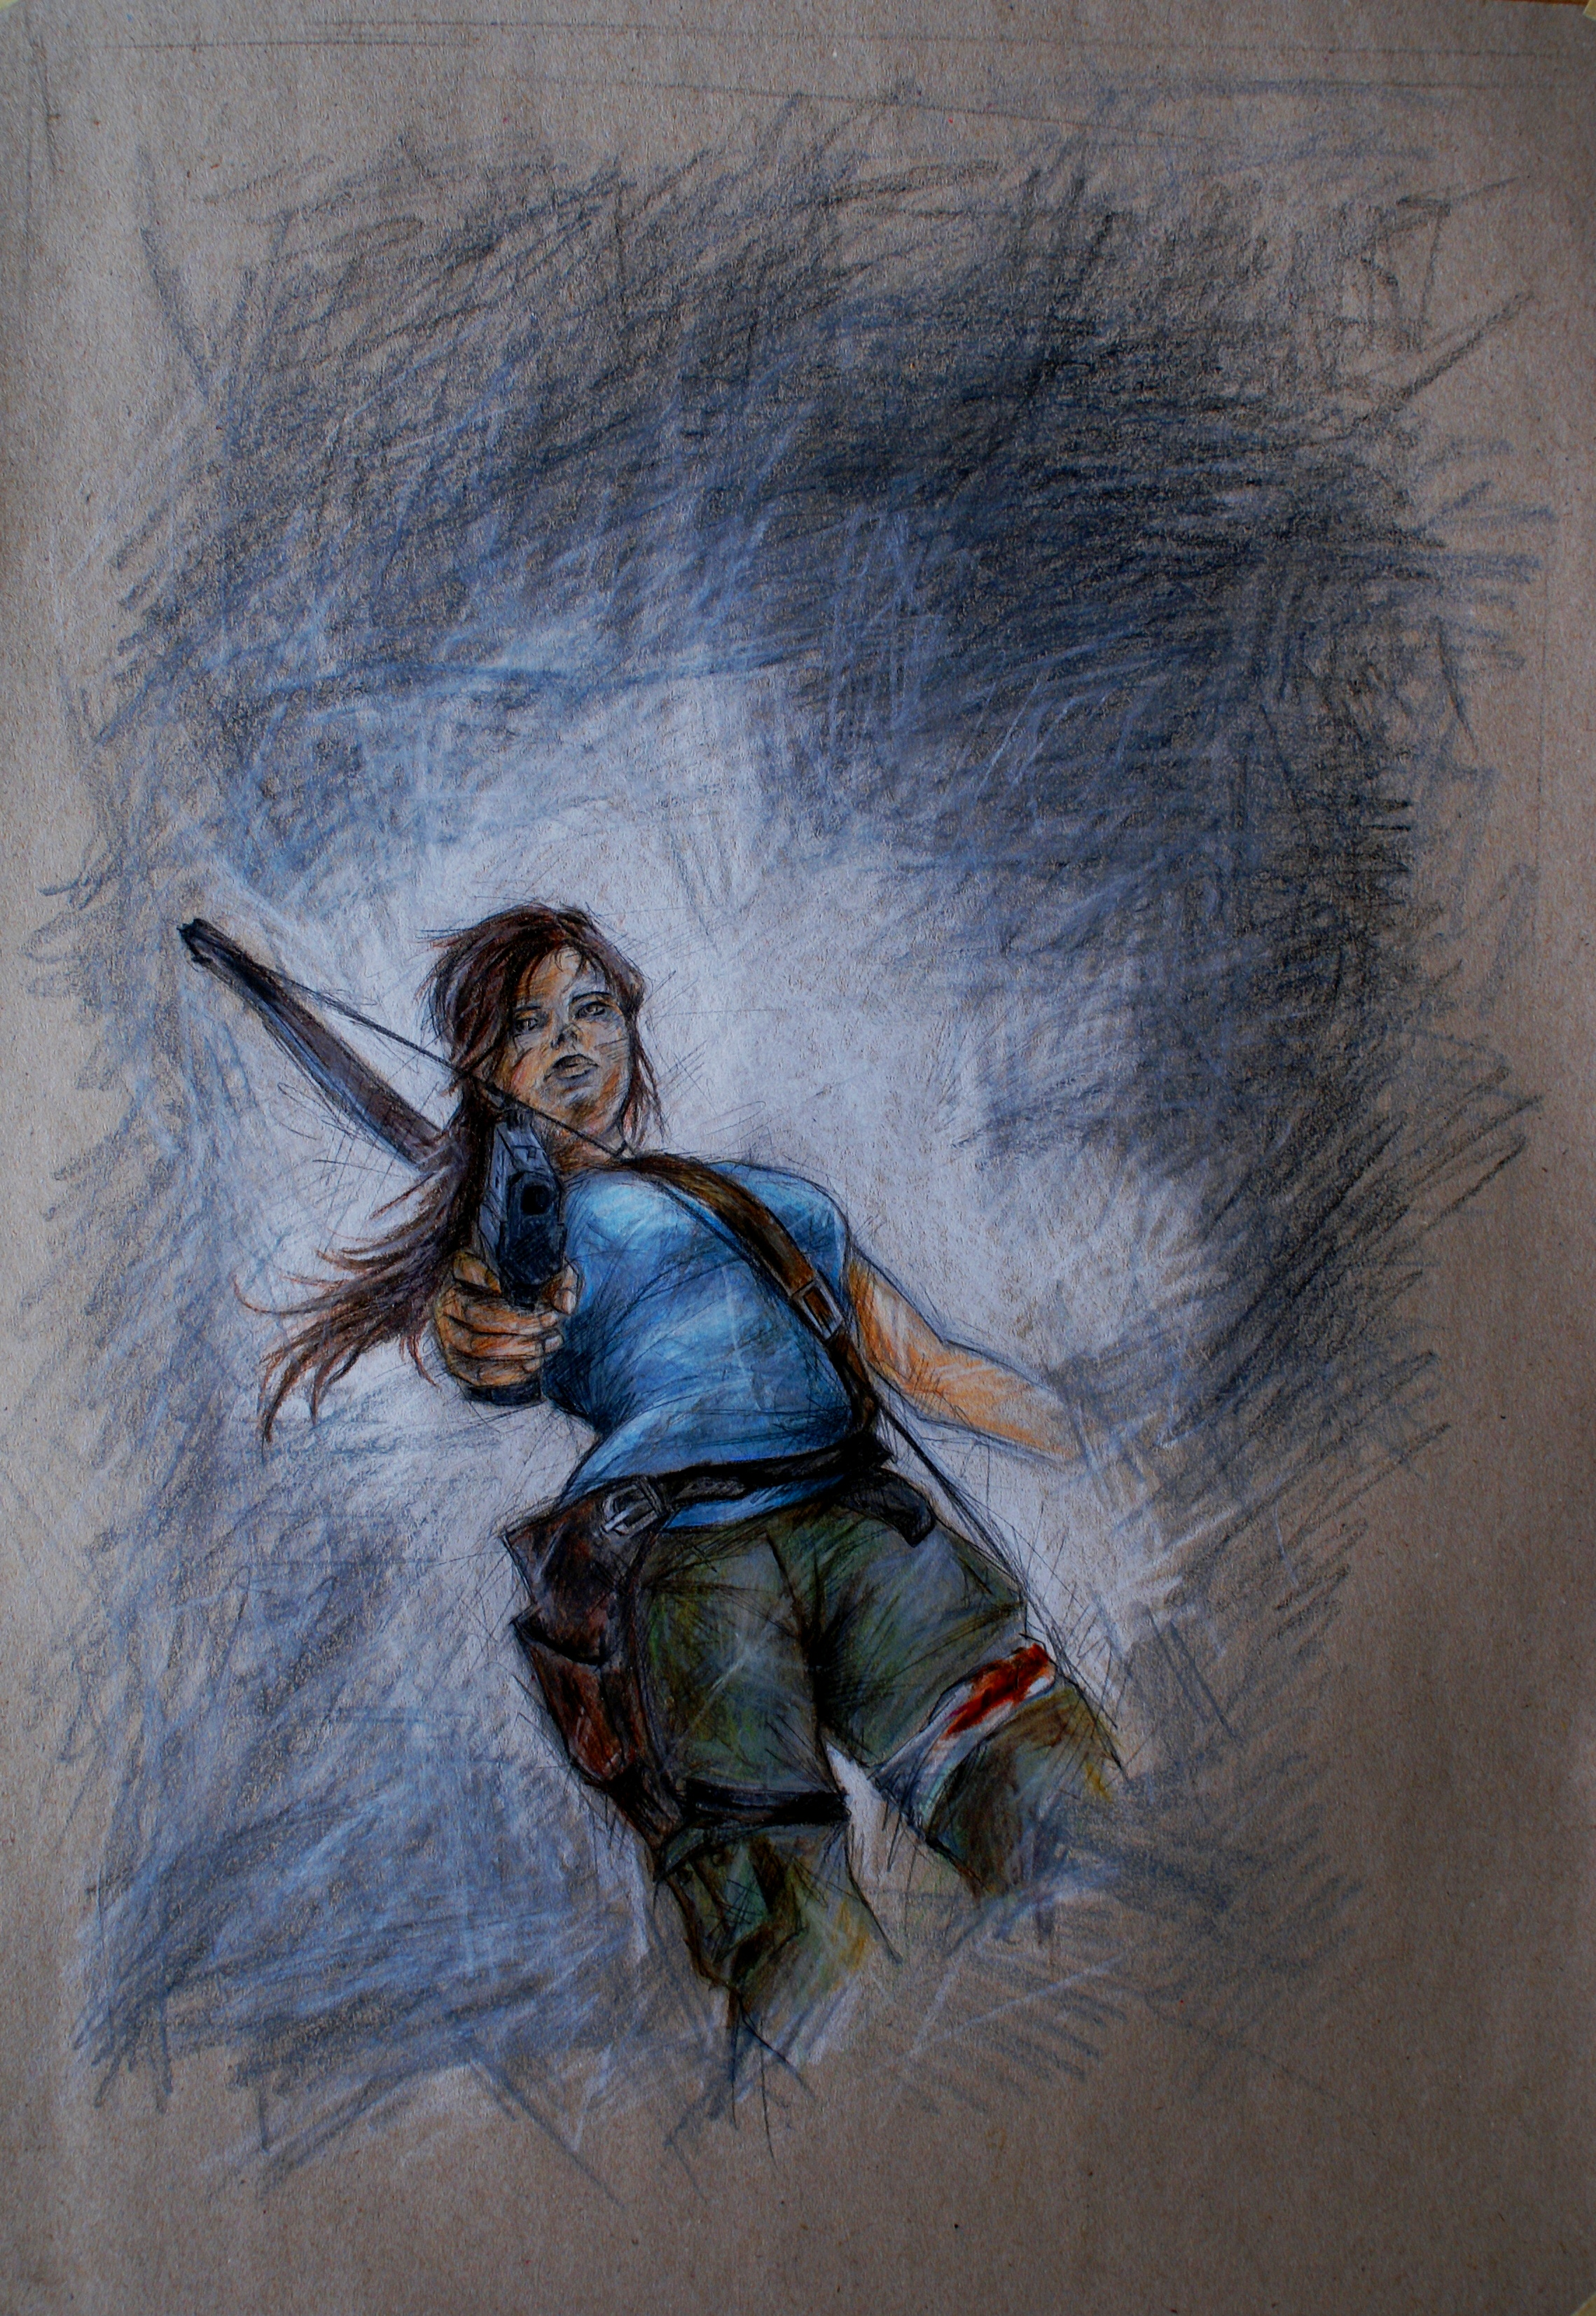 Tomb Raider by johannesklein